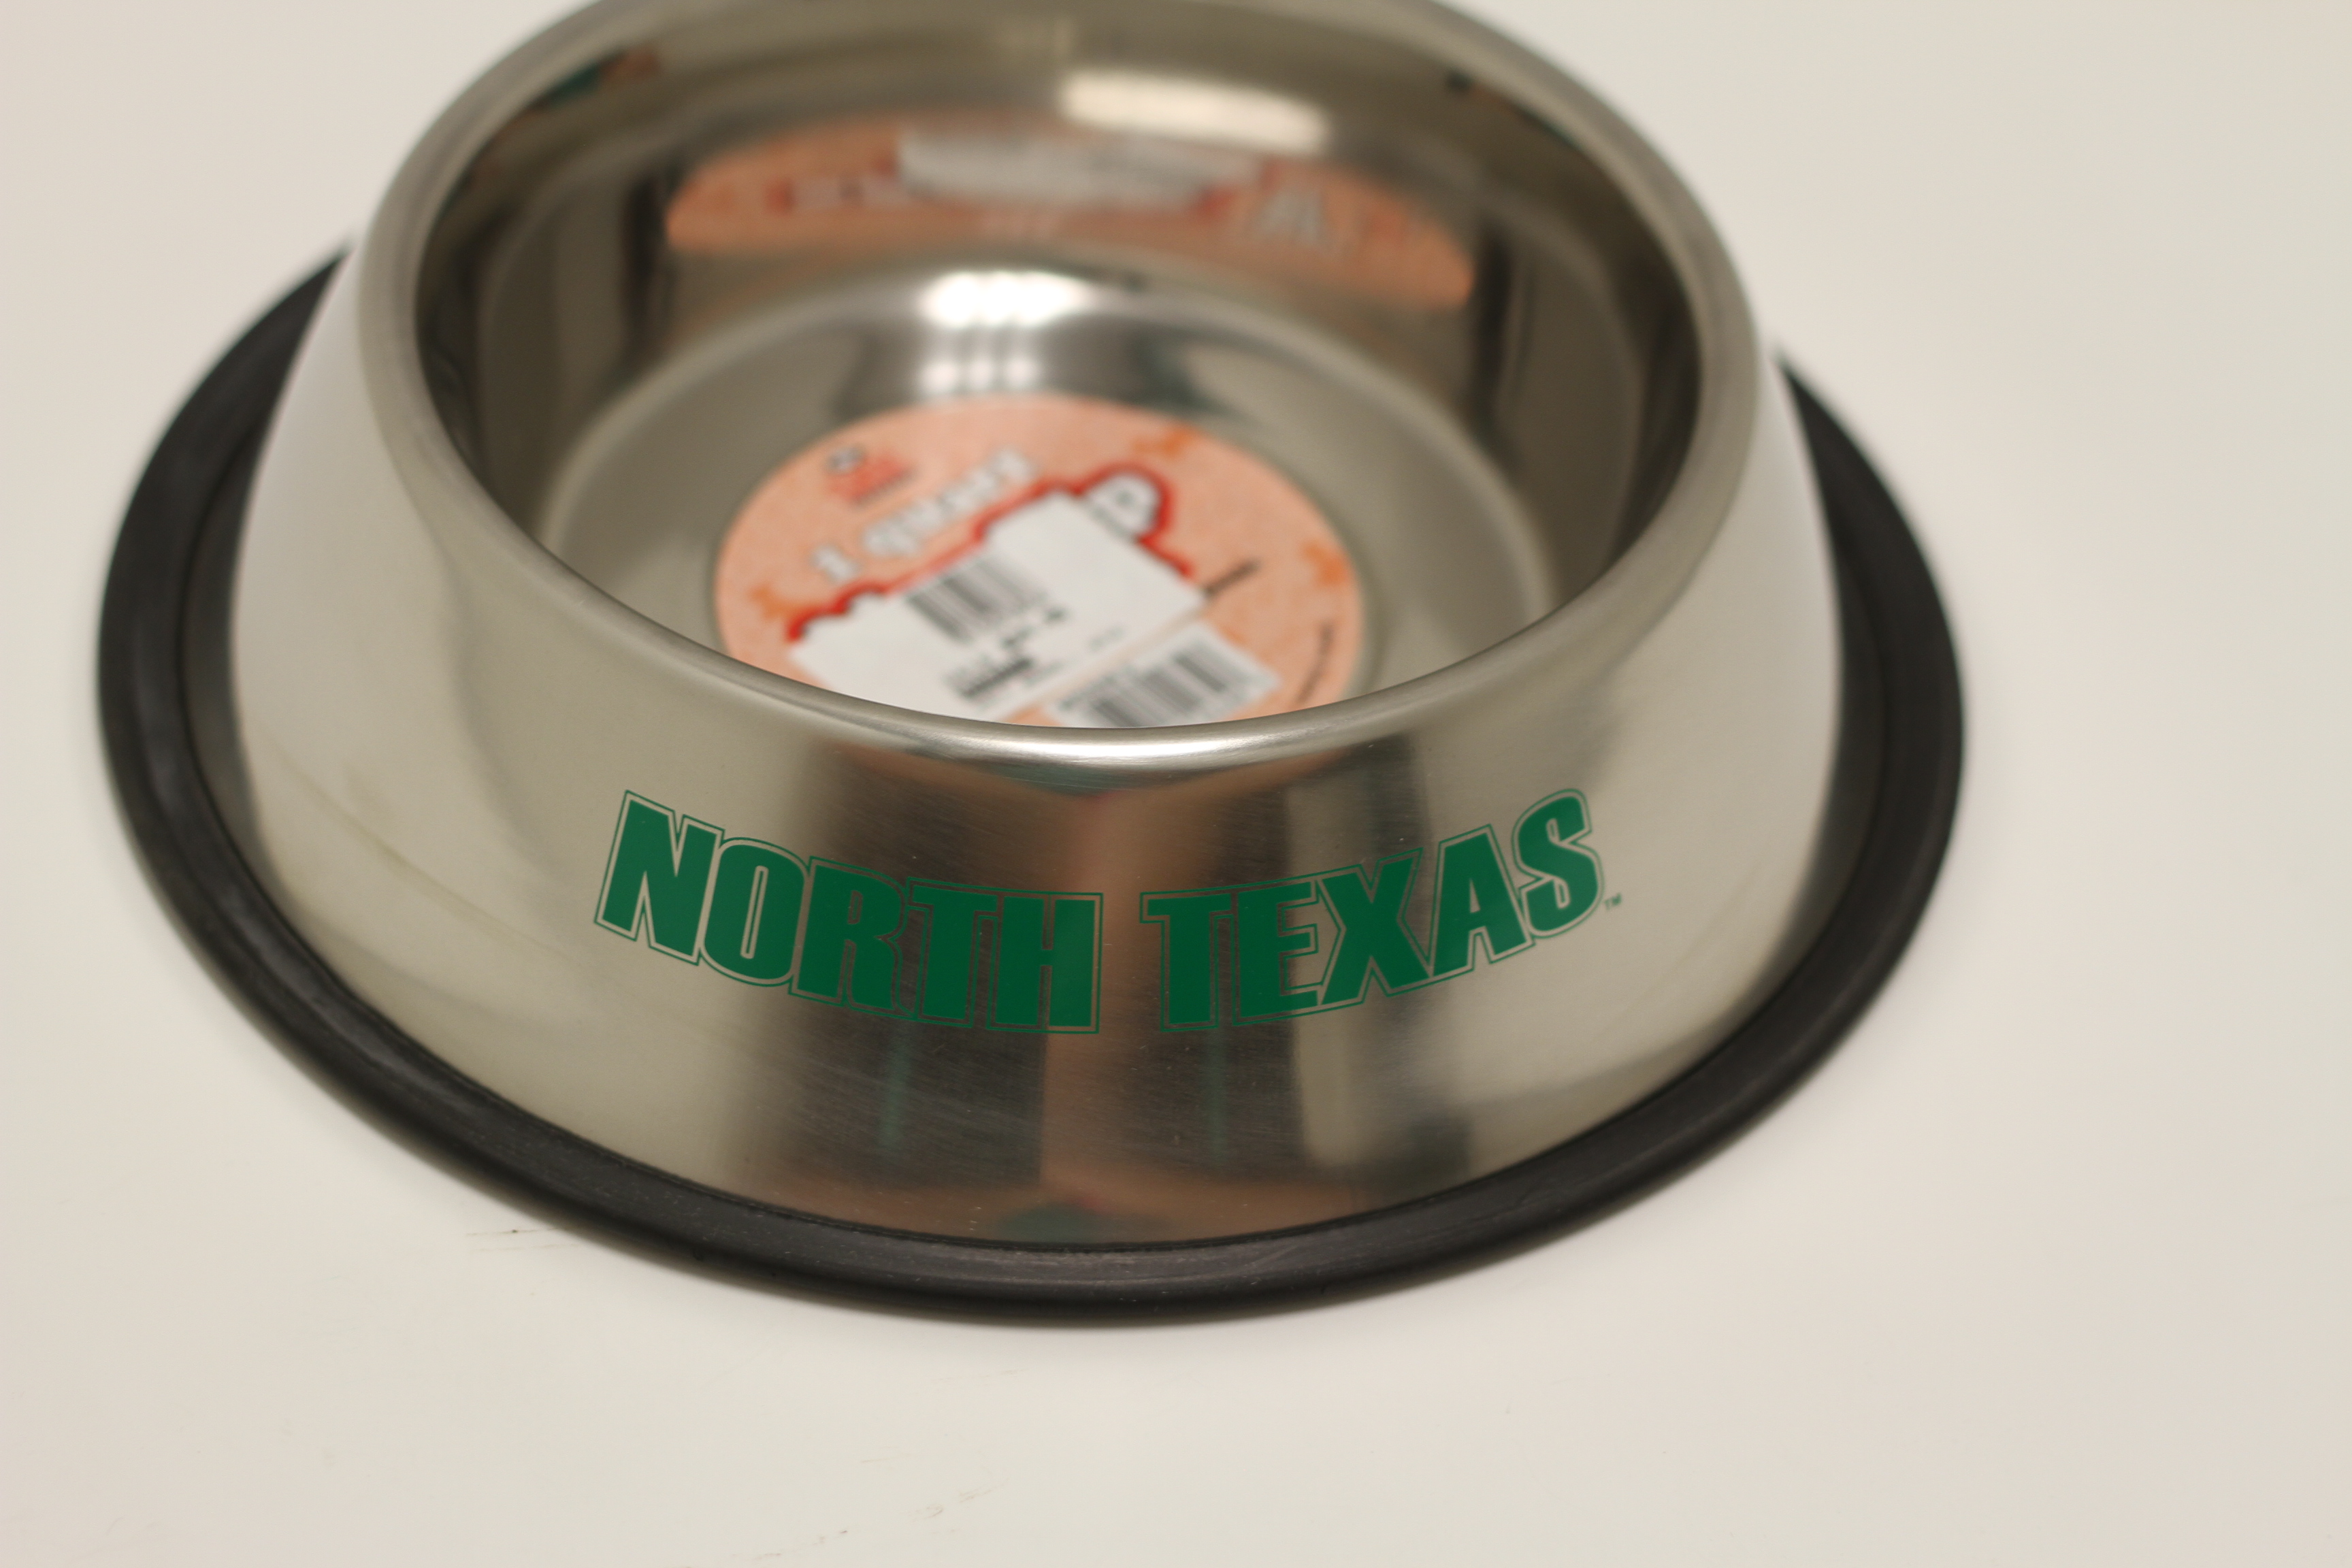 STAINLESS STEEL PET BOWL W/ GRIP